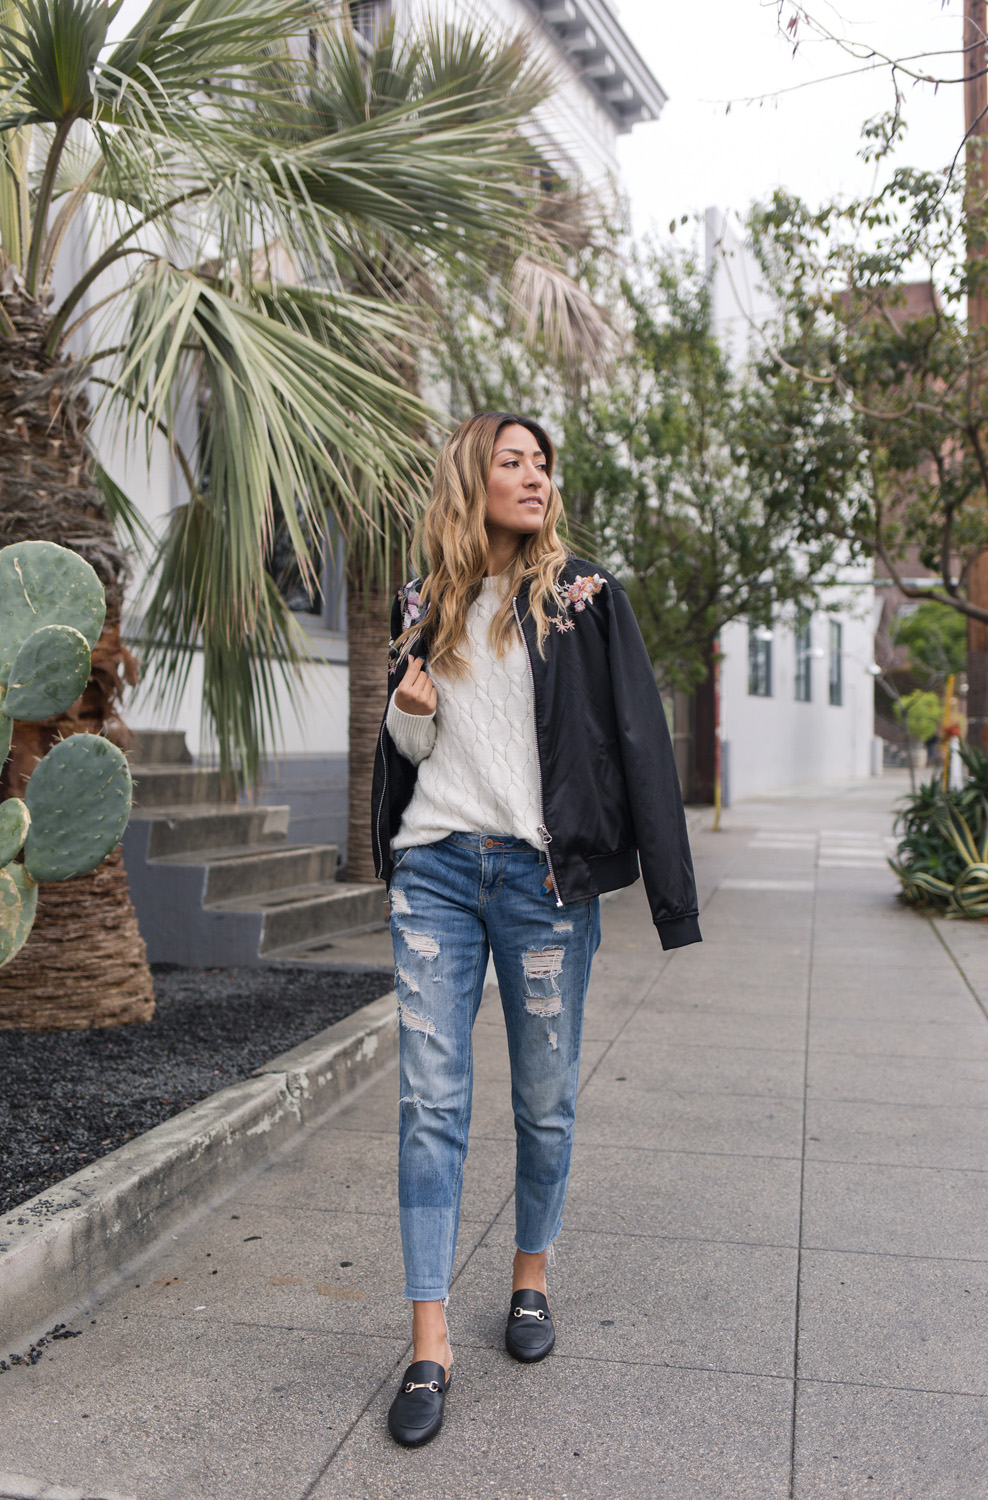 stefanie marie, photographer, melrodstyle, ootd, outfit, la blogger, latina blogger, hispanic blogger, mexican blogger, look of the day, street style, outfit inspo, inspiration, outfits, trending